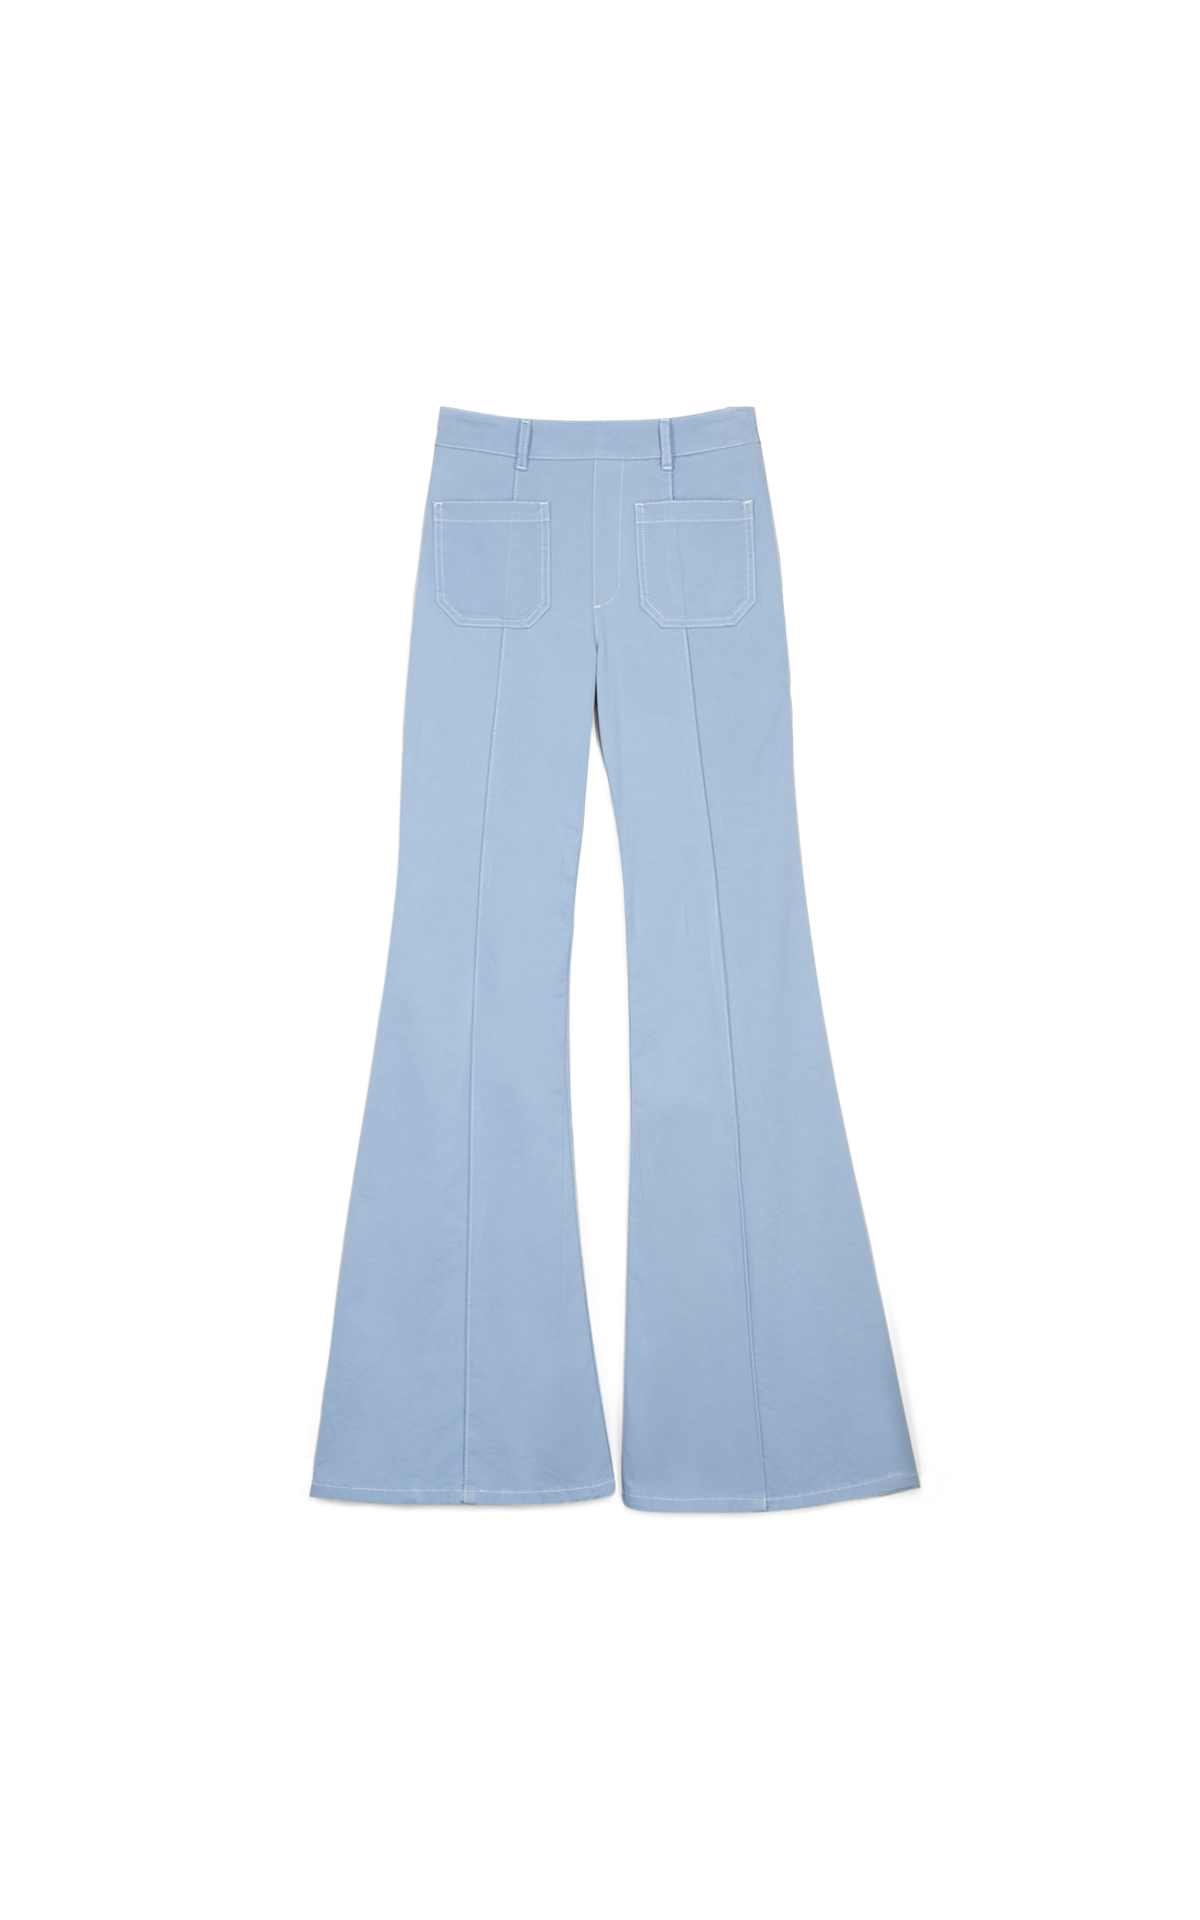 Chloé Denim flared trousers